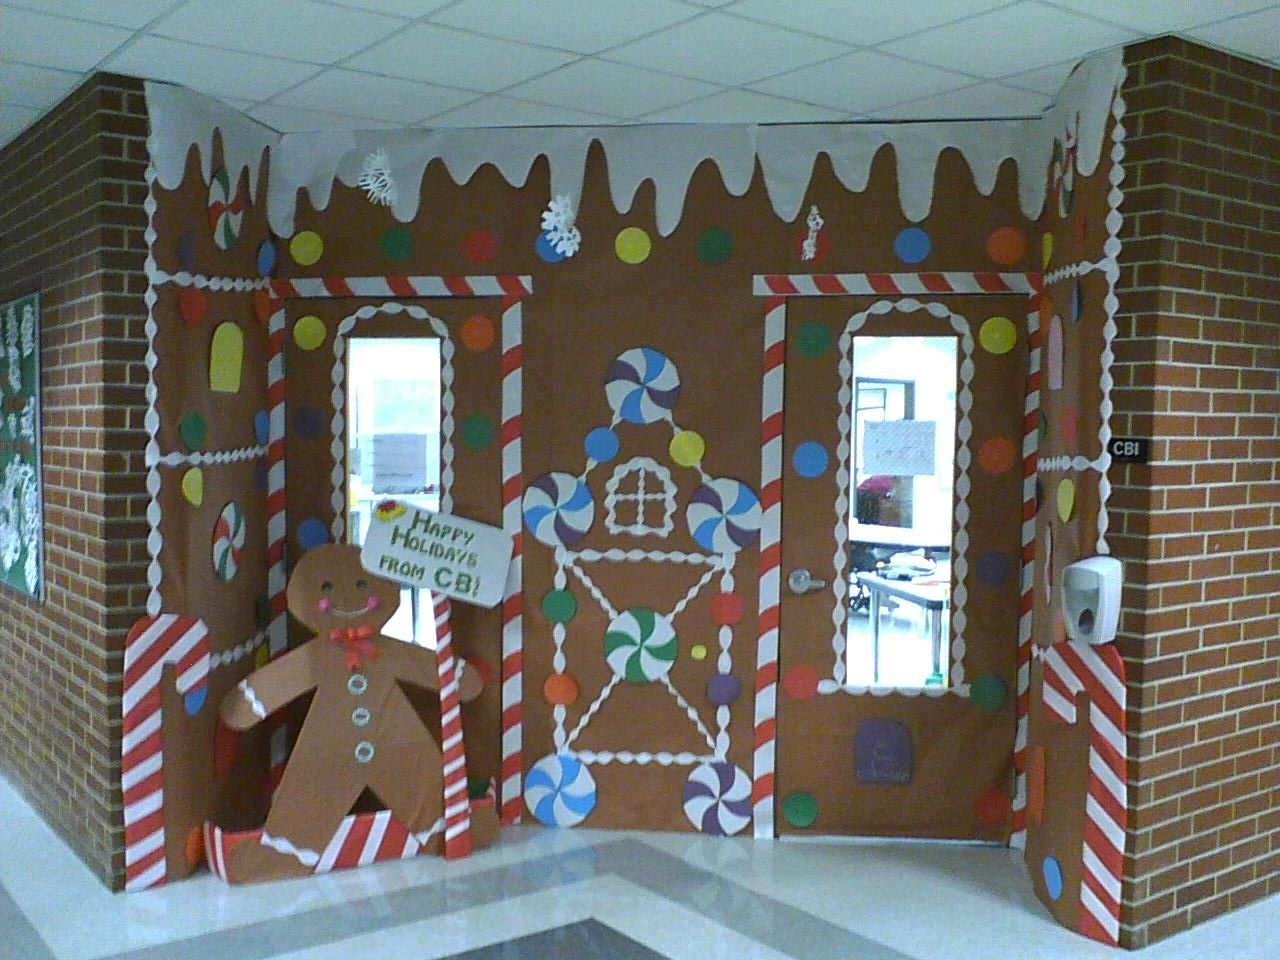 Gingerbread House @ school Mini houses with graham crackers and milk cartons - I need to start saving my milk cartons! & WOW! Gingerbread House @ school Mini houses with graham crackers and ...